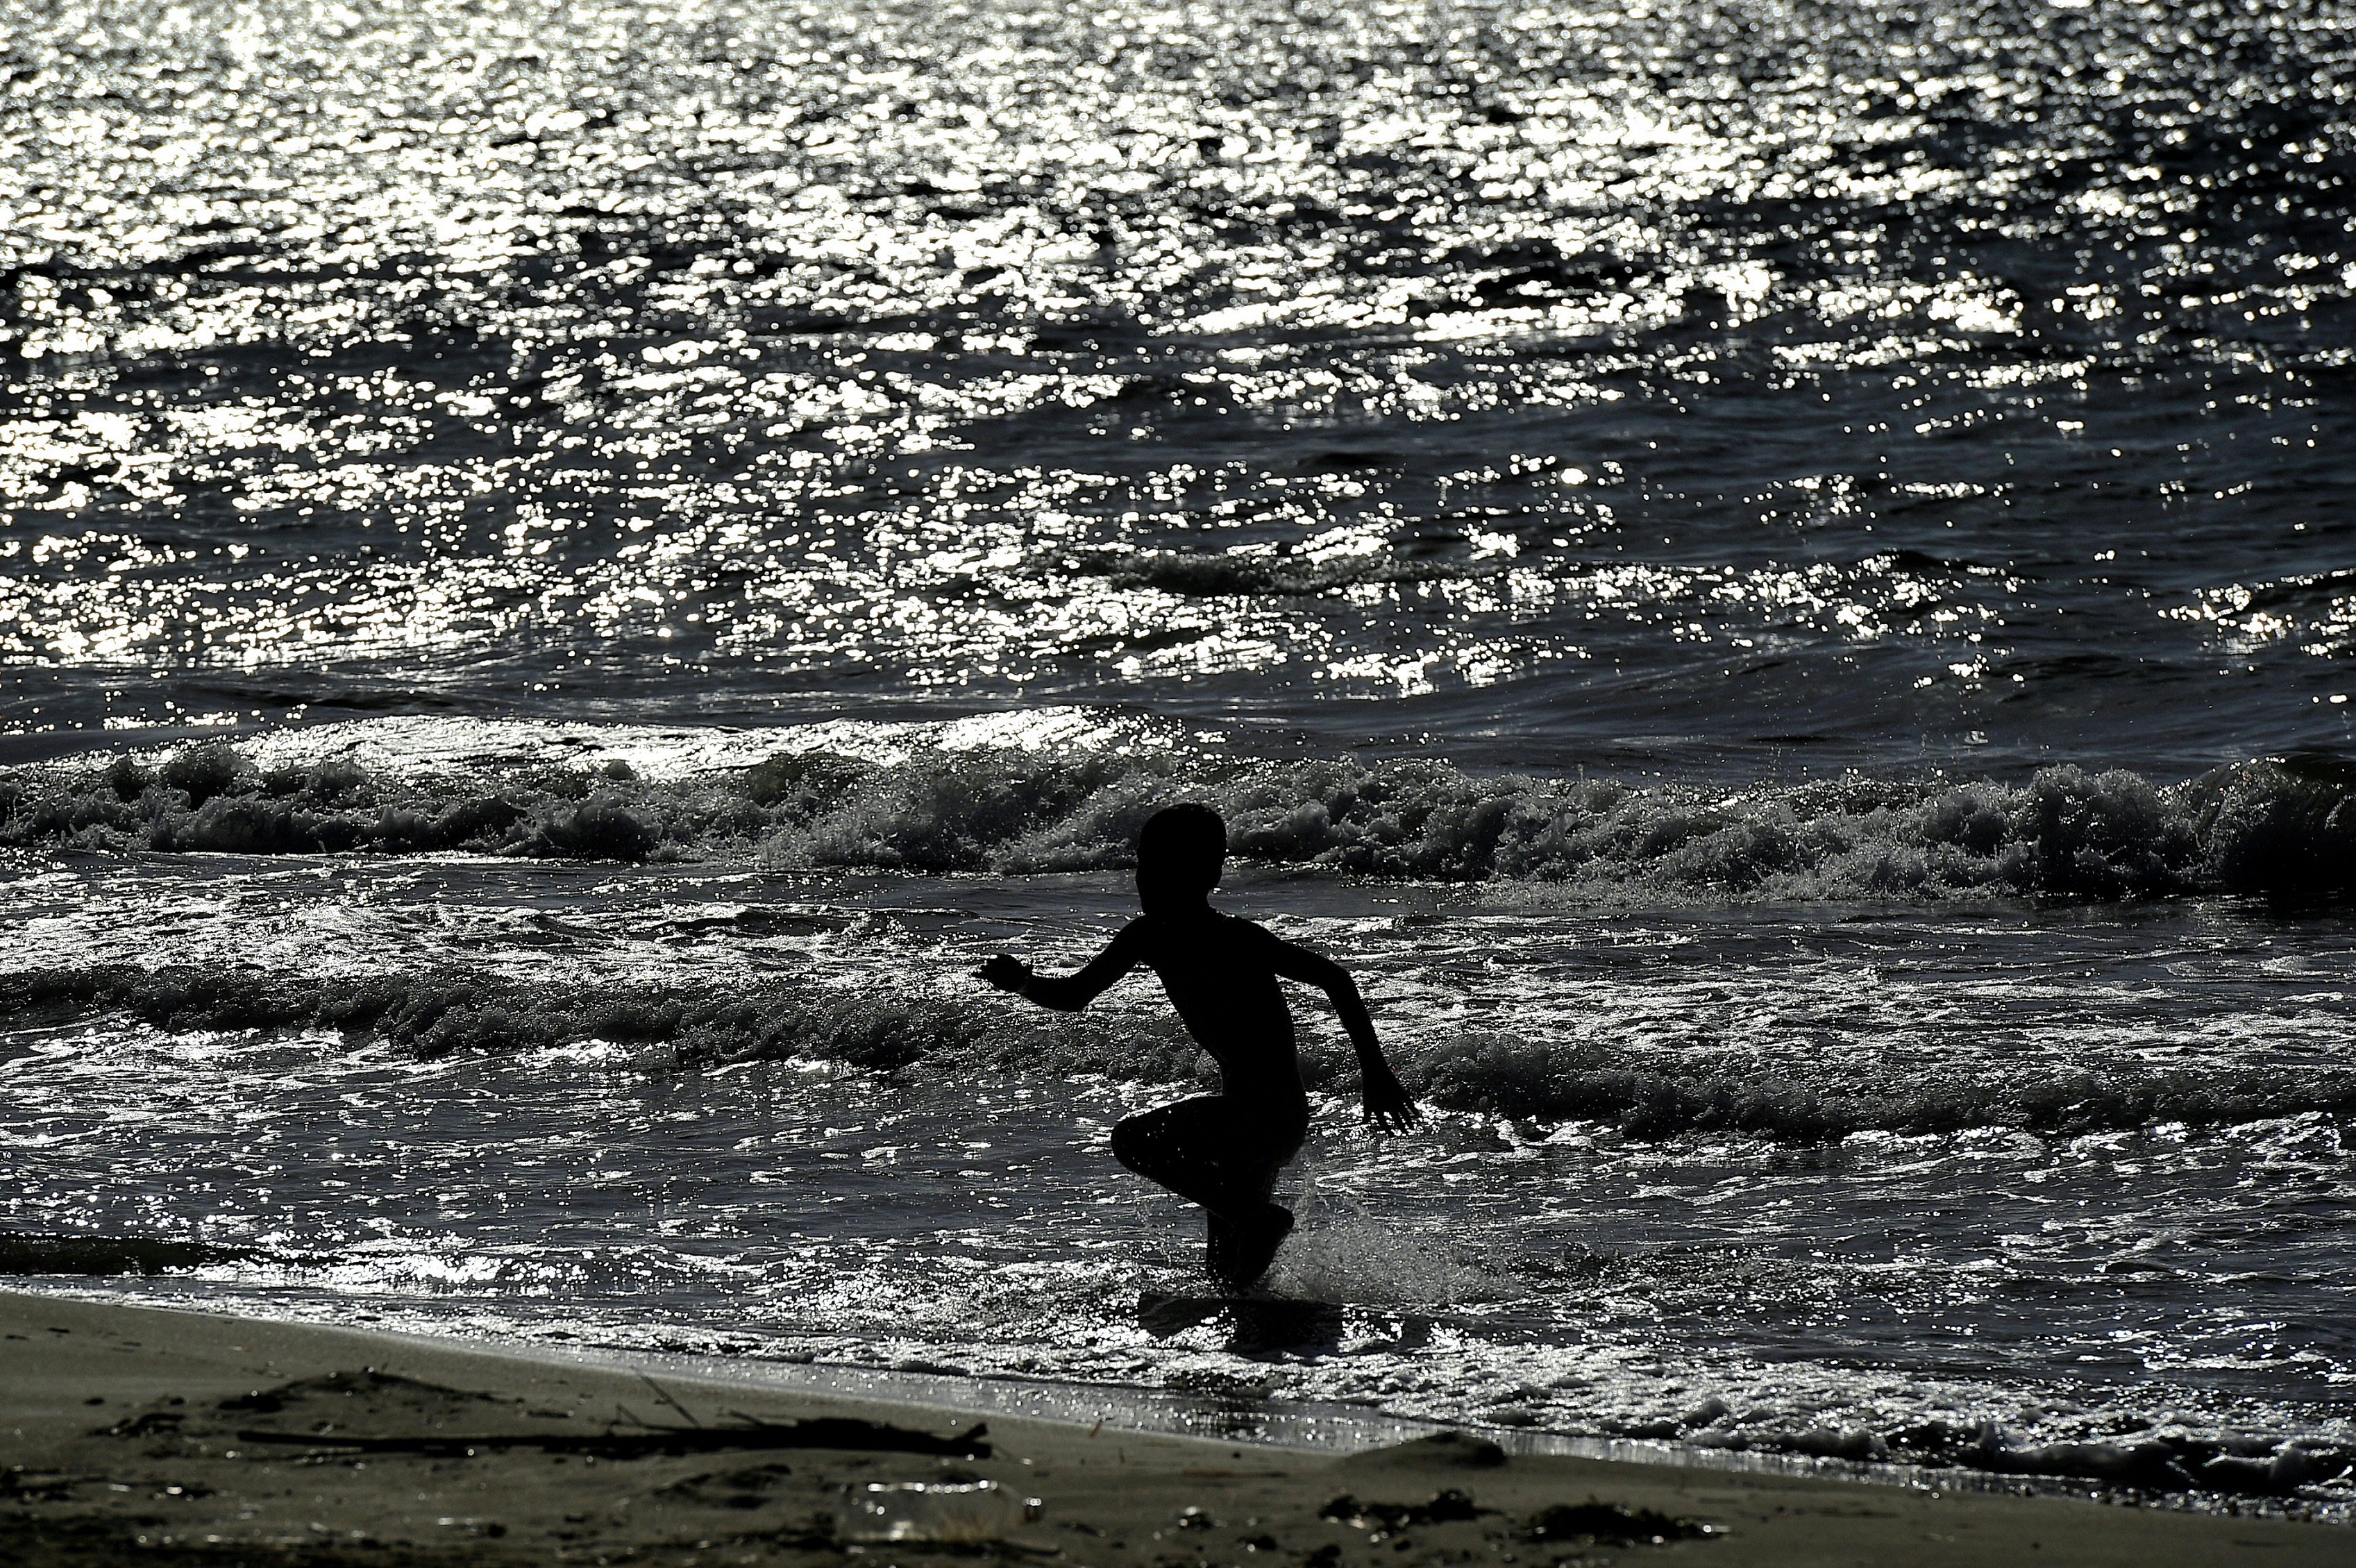 TO GO WITH AFP STORY BY JOHN HADOULIS A child runs on the beach in Myrsini on April 20, 2016, a few metres away from a summer resort sheltering nearly 350 Syrian refugees under the care of a Syria-born mayor, the first naturalised ex-migrant elected to office in Greece. The LM Village resort, partly owned by the local municipality of Kyllini, some 280 kilometres (170 miles) west of Athens, had previously been abandoned for years and extensively looted, a side-effect of the economic crisis gripping Greece since 2010. Each of its small apartments now houses two families with children, the youngest of which was born in a nearby hospital a few days ago. / AFP PHOTO / ARIS MESSINIS